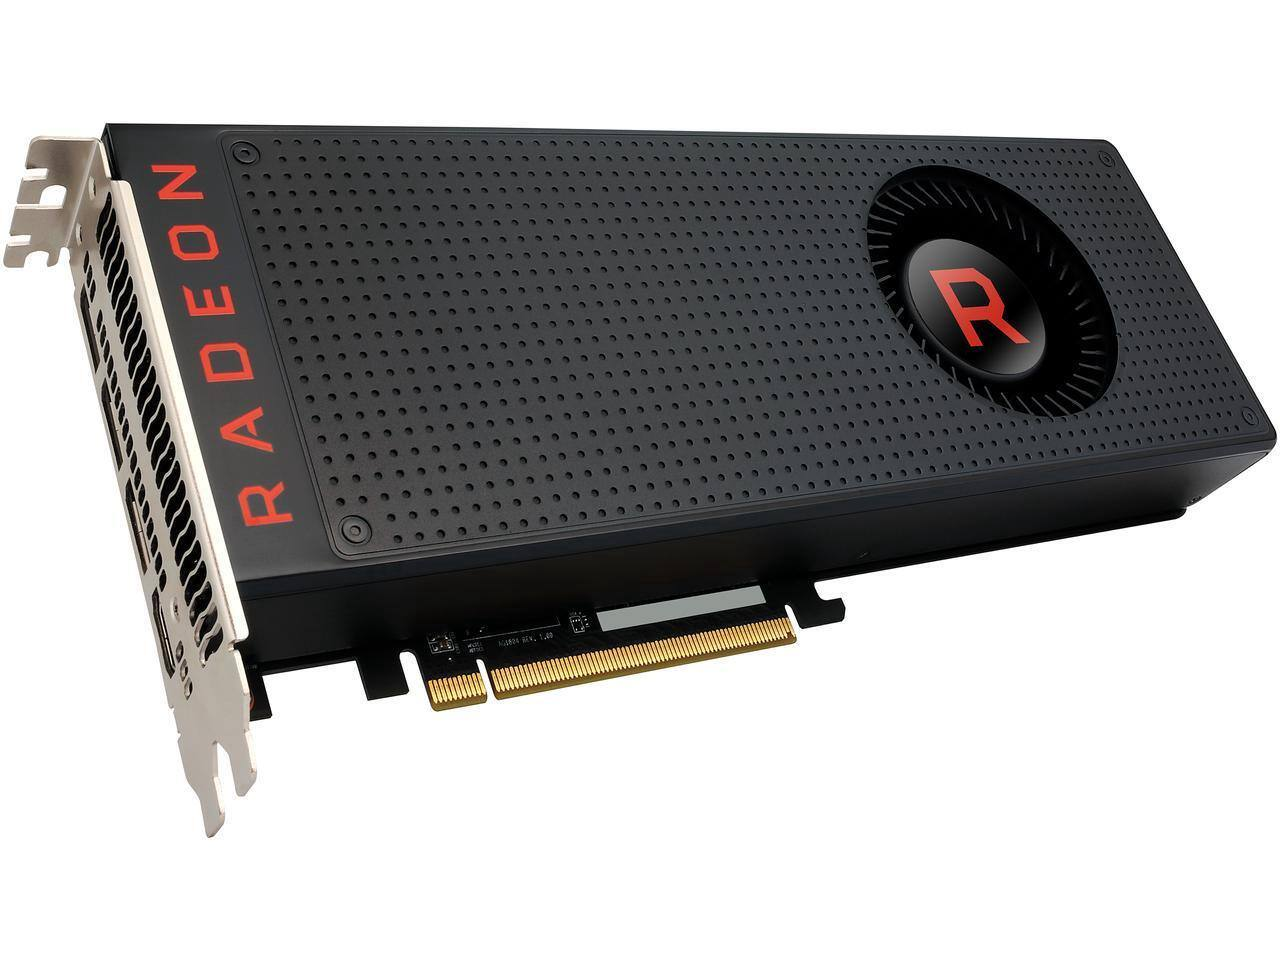 ASRock Phantom Gaming X Radeon RX Vega 64 8GB HBM2 Graphics Card for $409.99 + Free Shipping